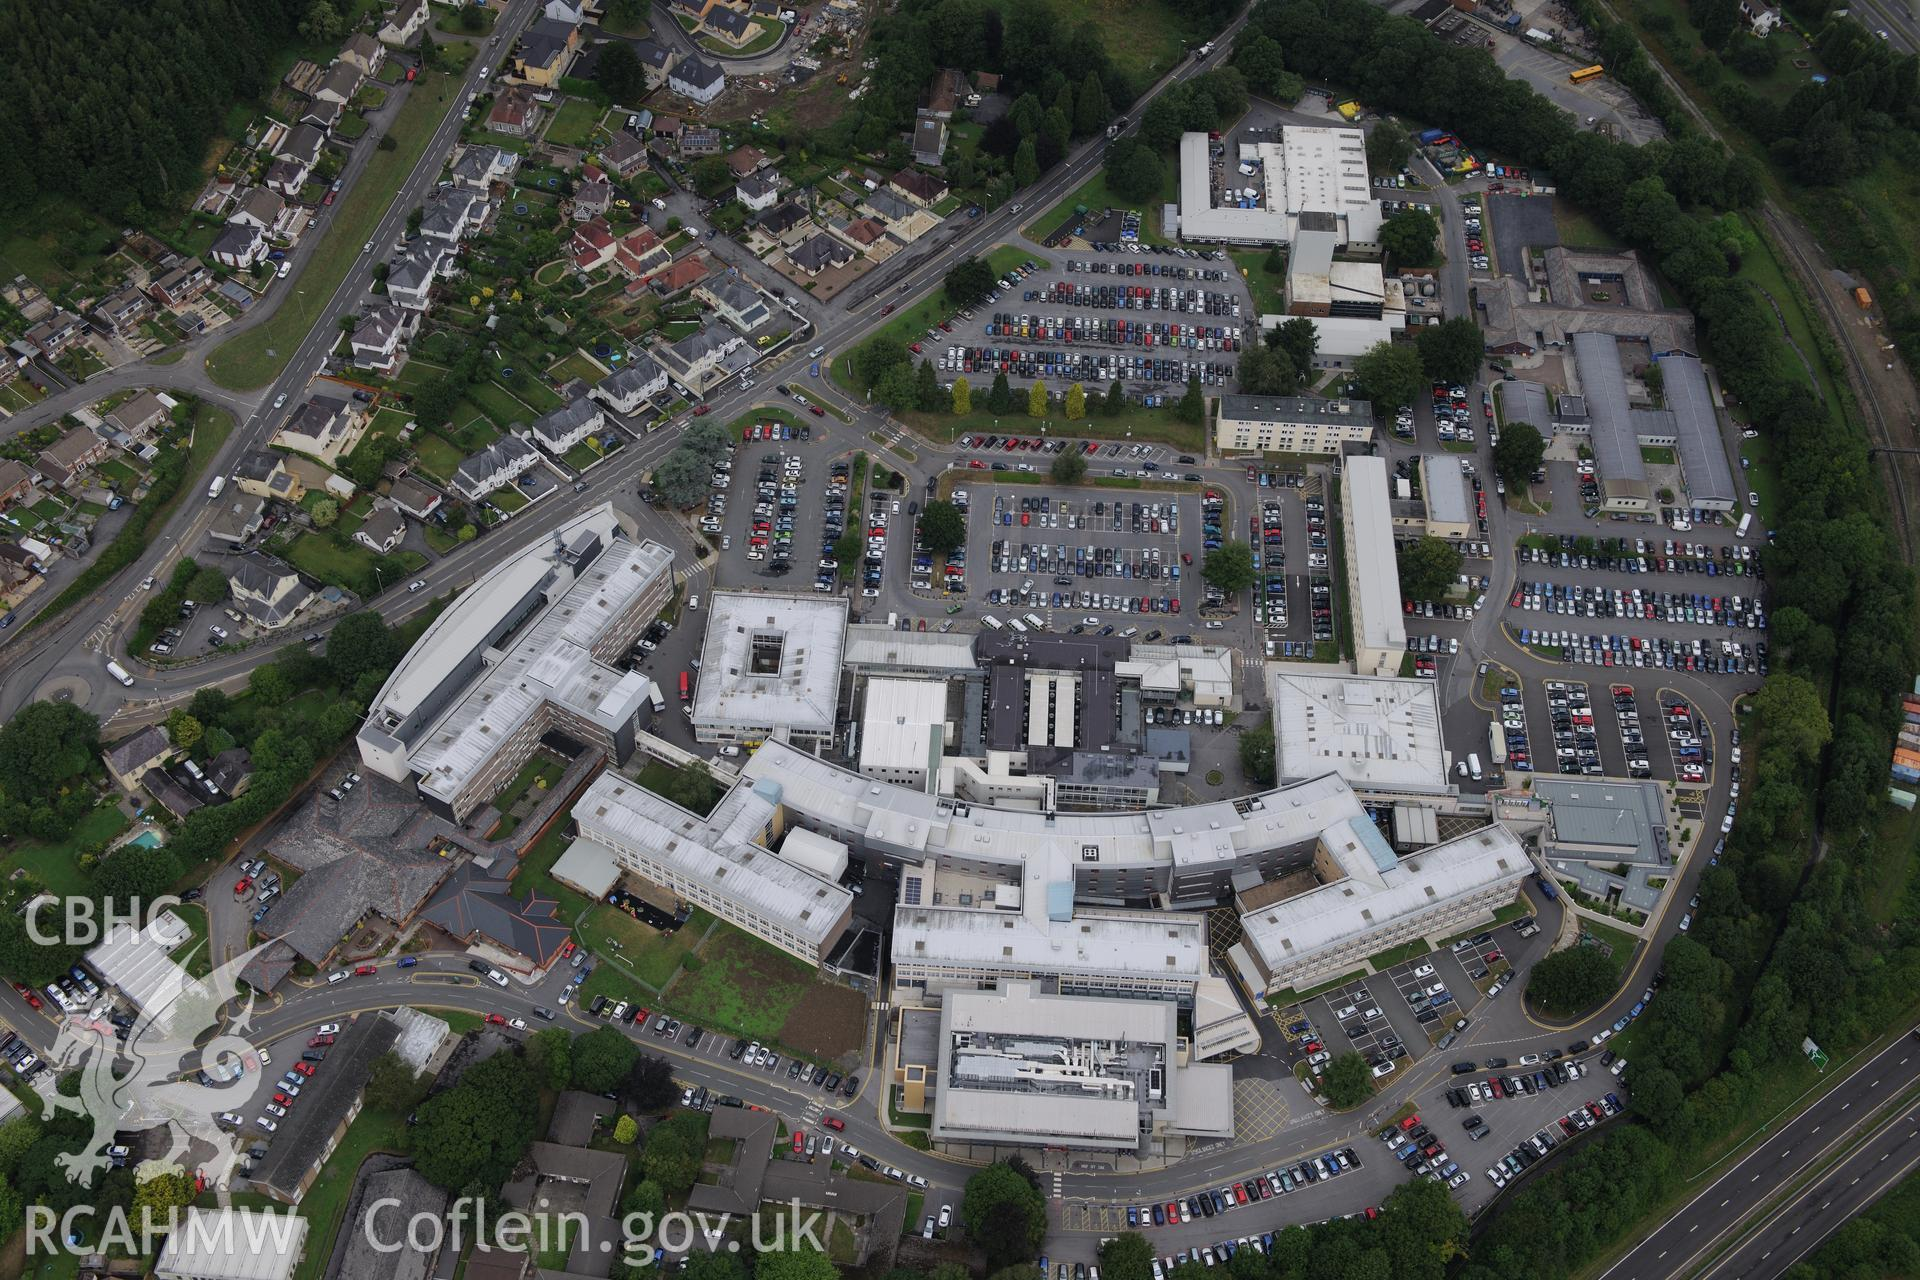 West Wales General Hospital, Carmarthen. Oblique aerial photograph taken during the Royal Commission?s programme of archaeological aerial reconnaissance by Toby Driver on 1st August 2013.